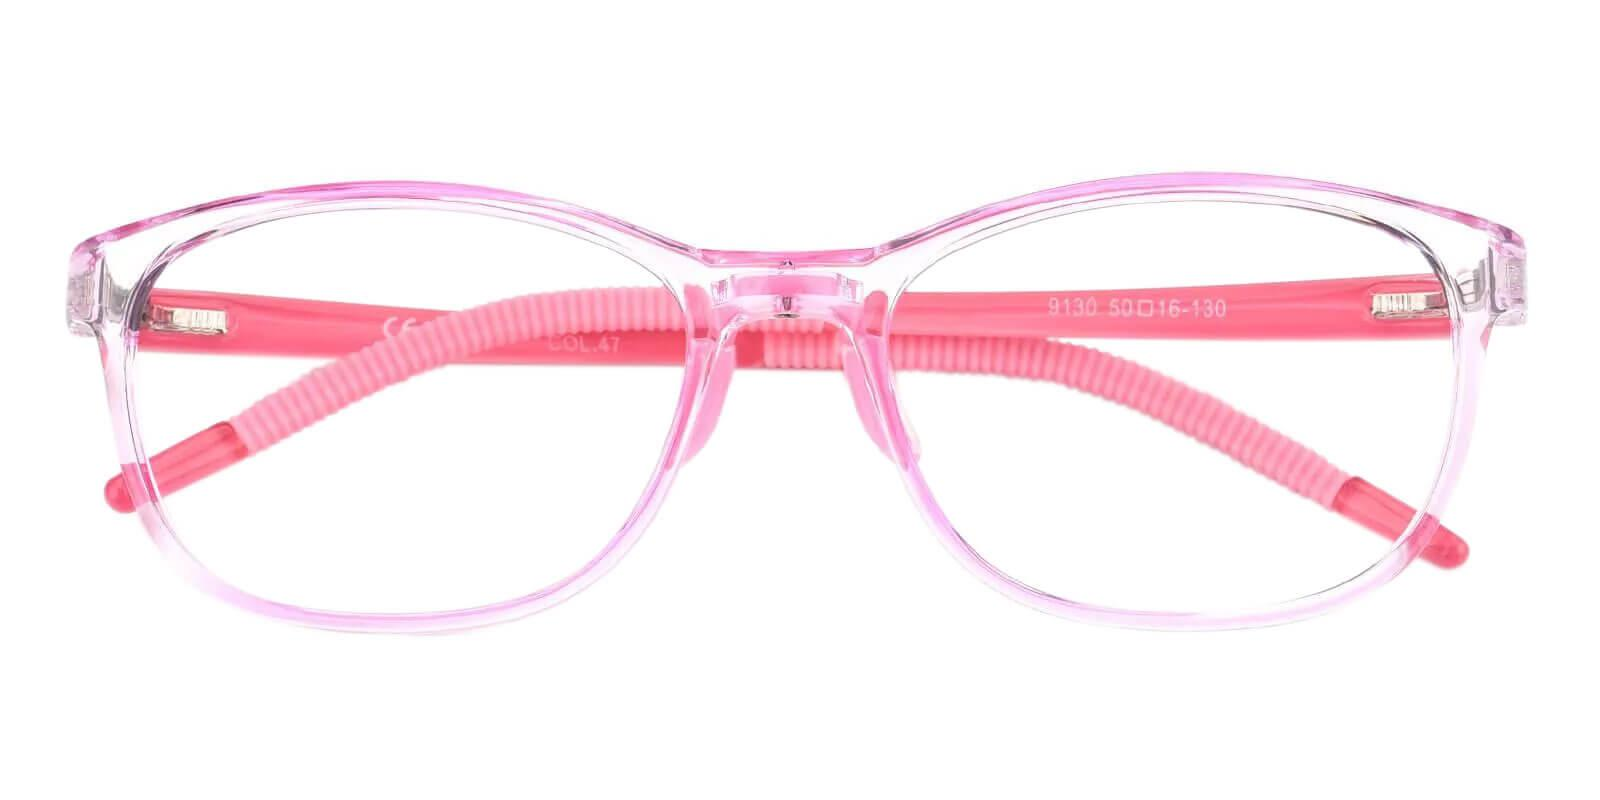 Kids-Tethys Pink TR Eyeglasses , Lightweight , UniversalBridgeFit Frames from ABBE Glasses